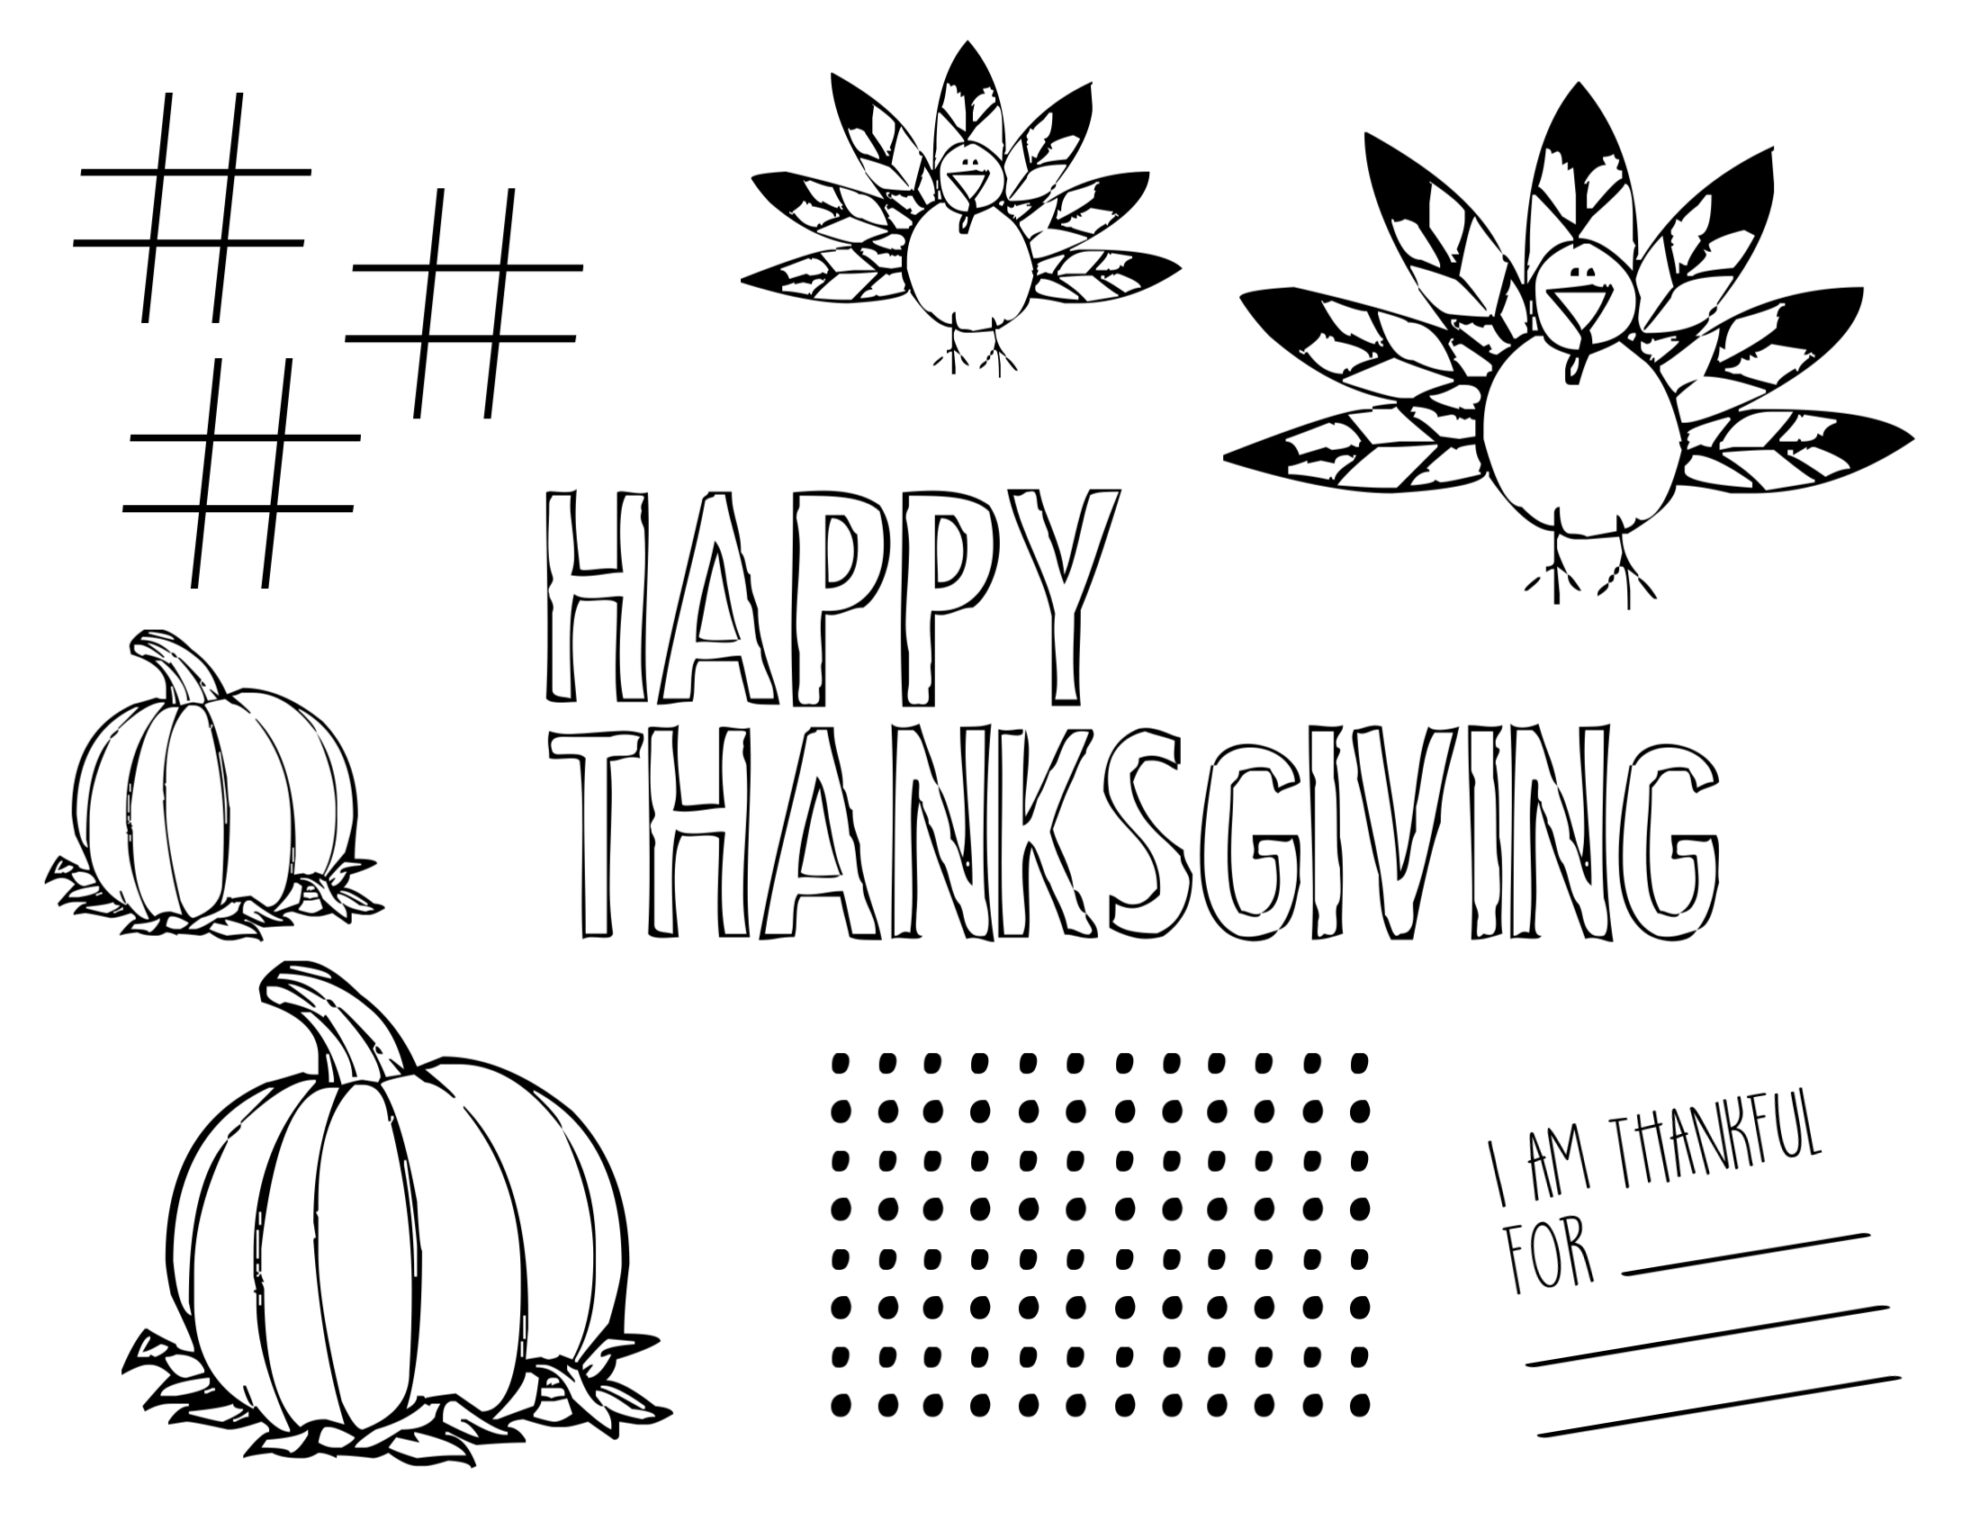 photograph about Printable Thanksgiving Placemat called Totally free Printable Thanksgiving Placemat - Paper Path Style and design